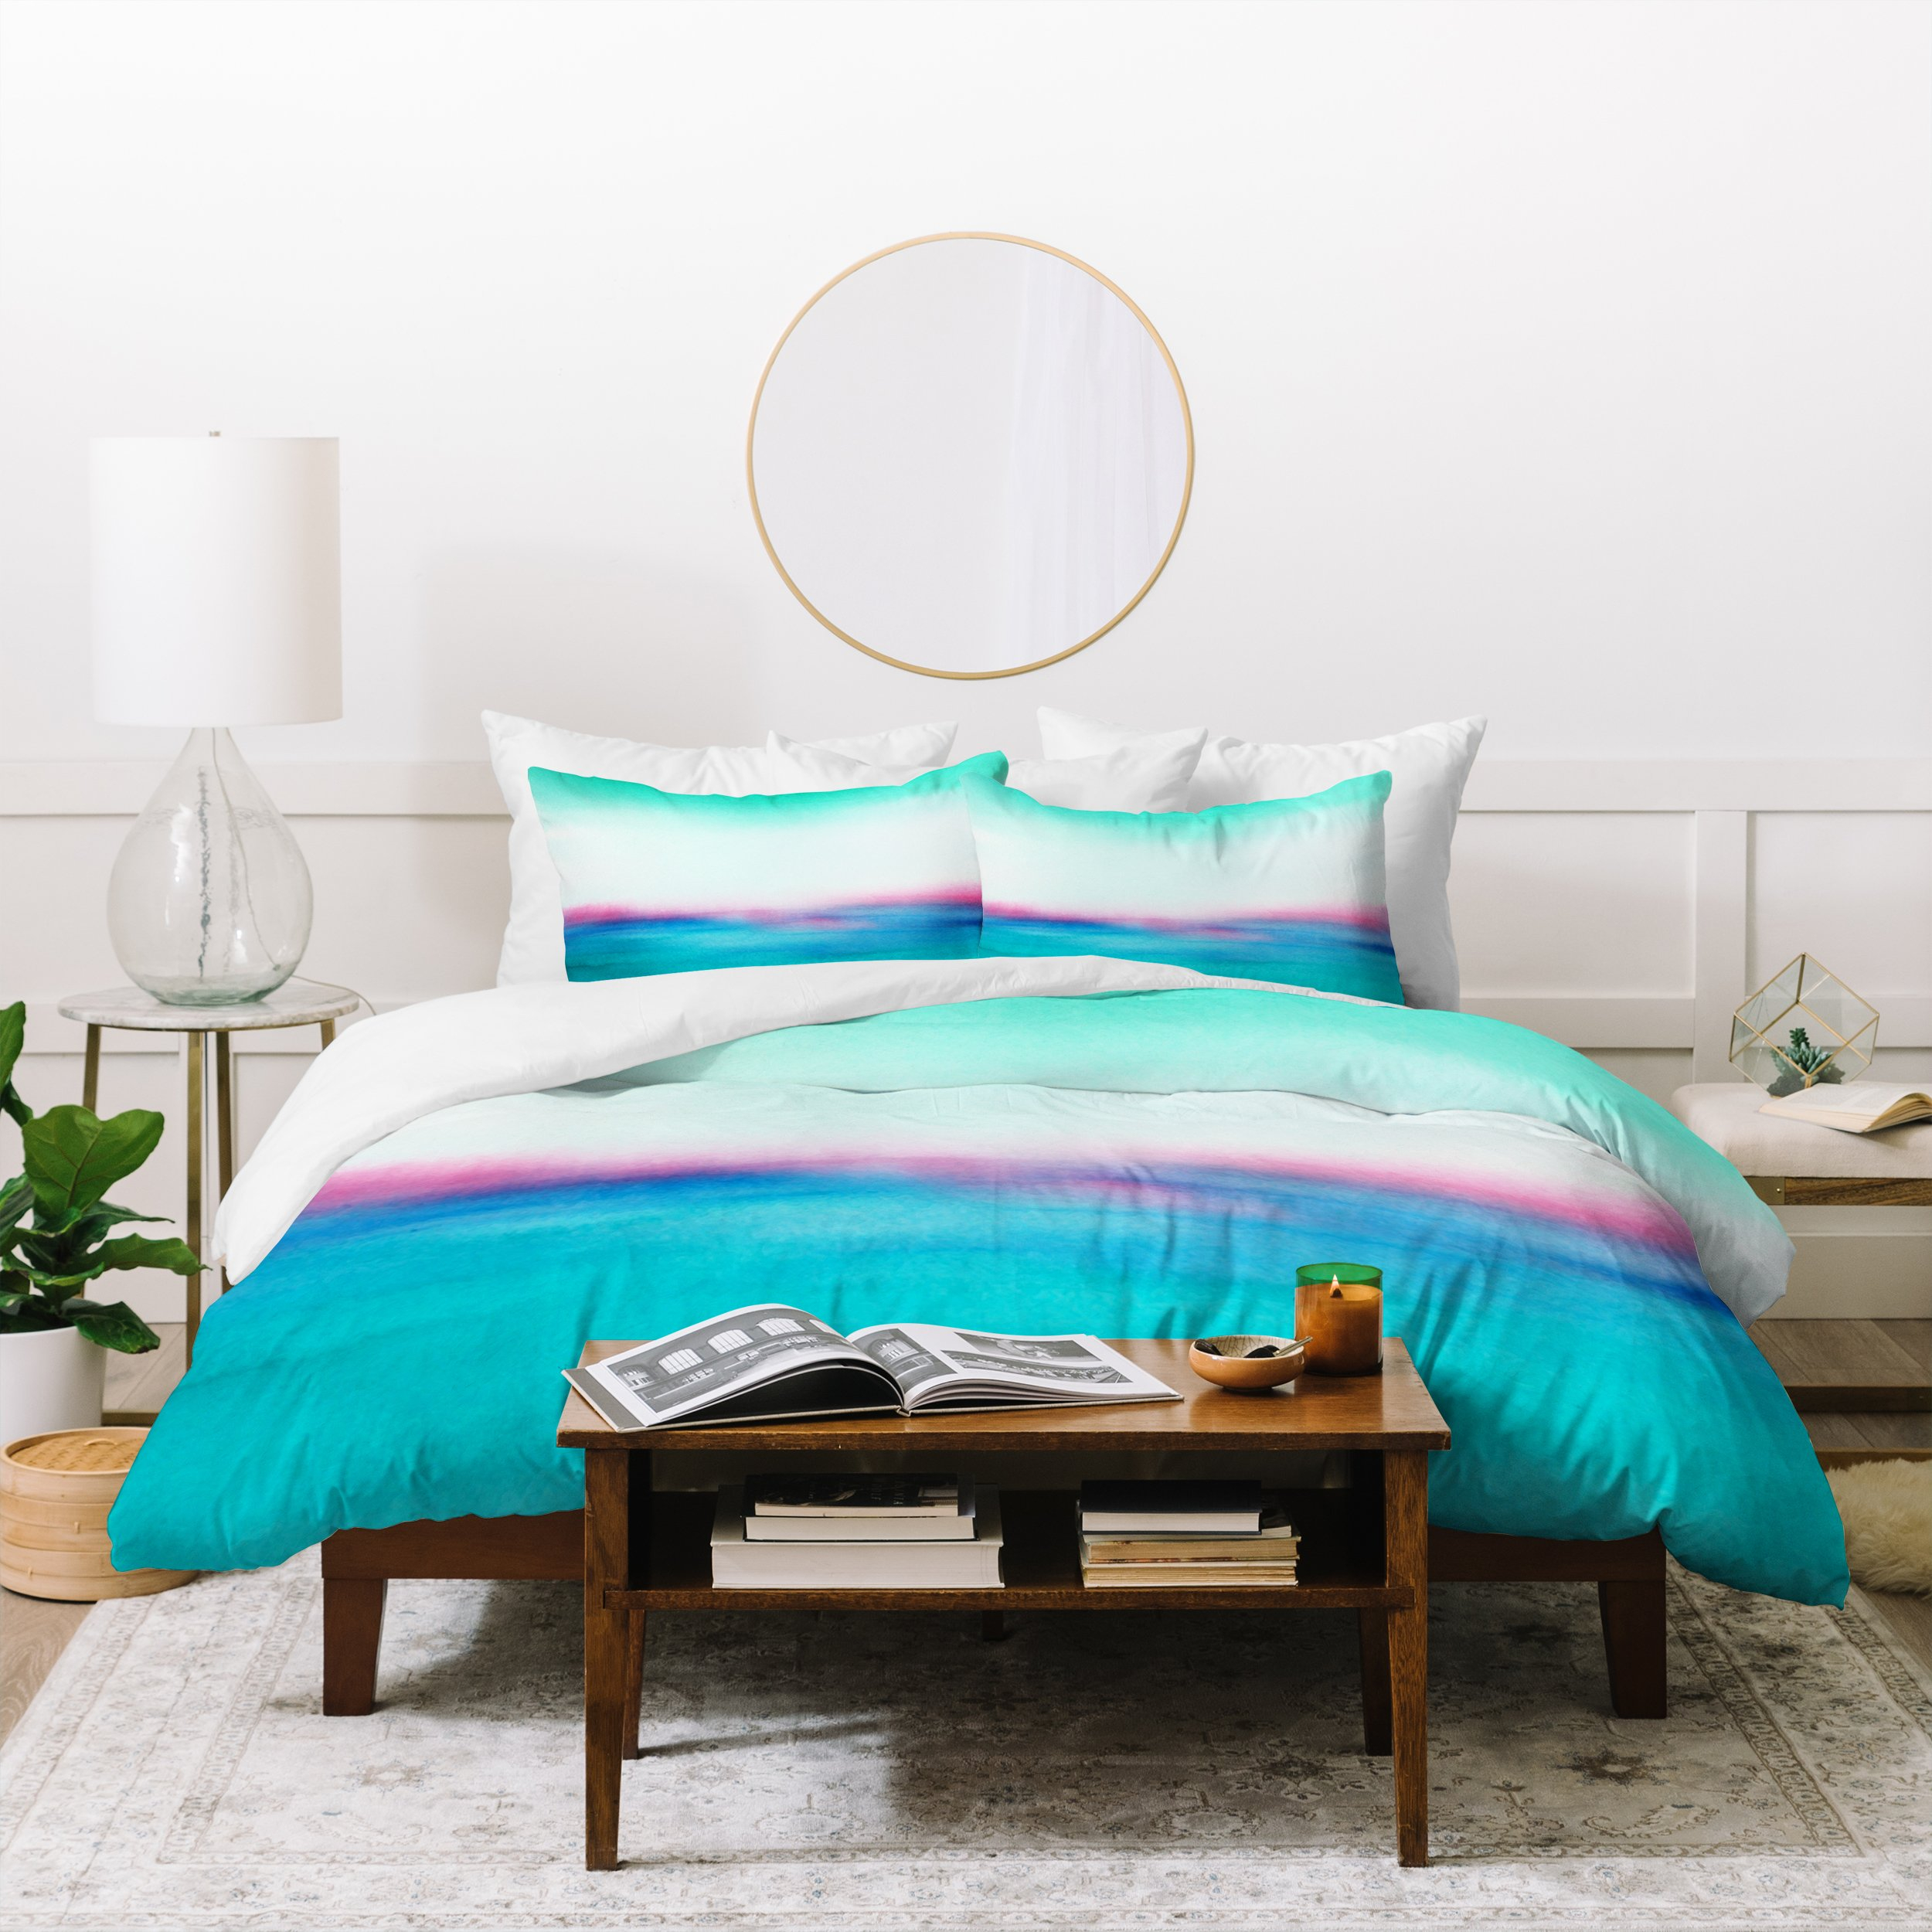 Image of Laura Trevey In Your Dreams Duvet Cover